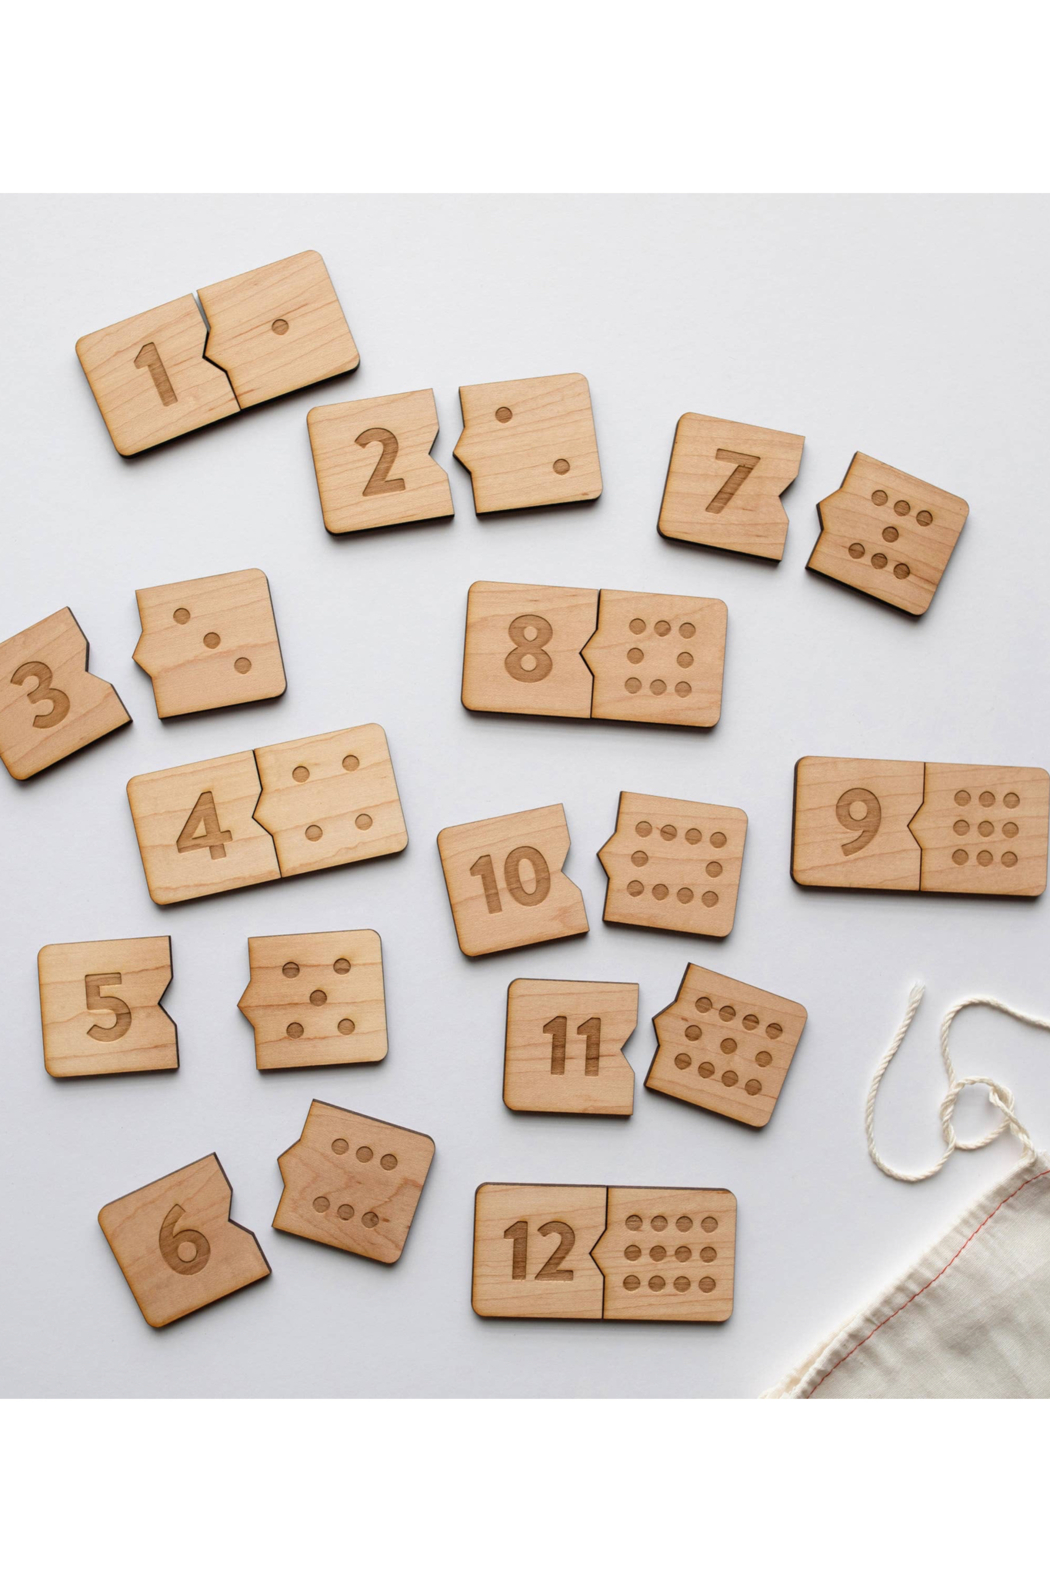 Gladfolk Wooden Number Match Puzzle • Modern Domino Style Kids Game - Main Image